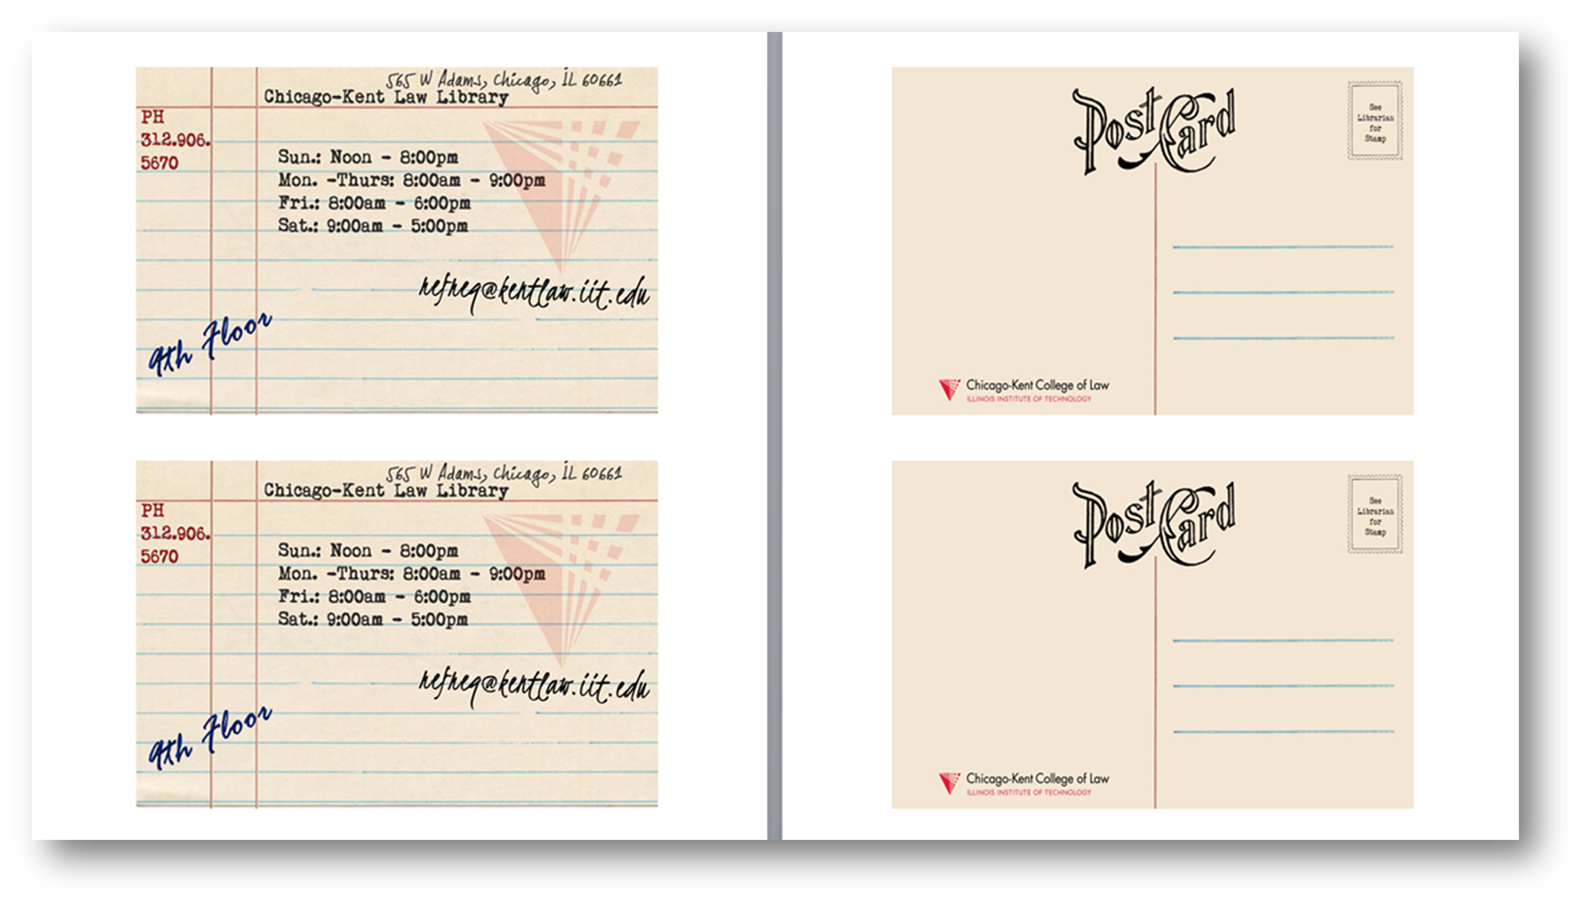 Postcard Template in Microsoft Word - Scott Vanderlin, IIT-Chicago Kent Law Library  Click to download Word document.